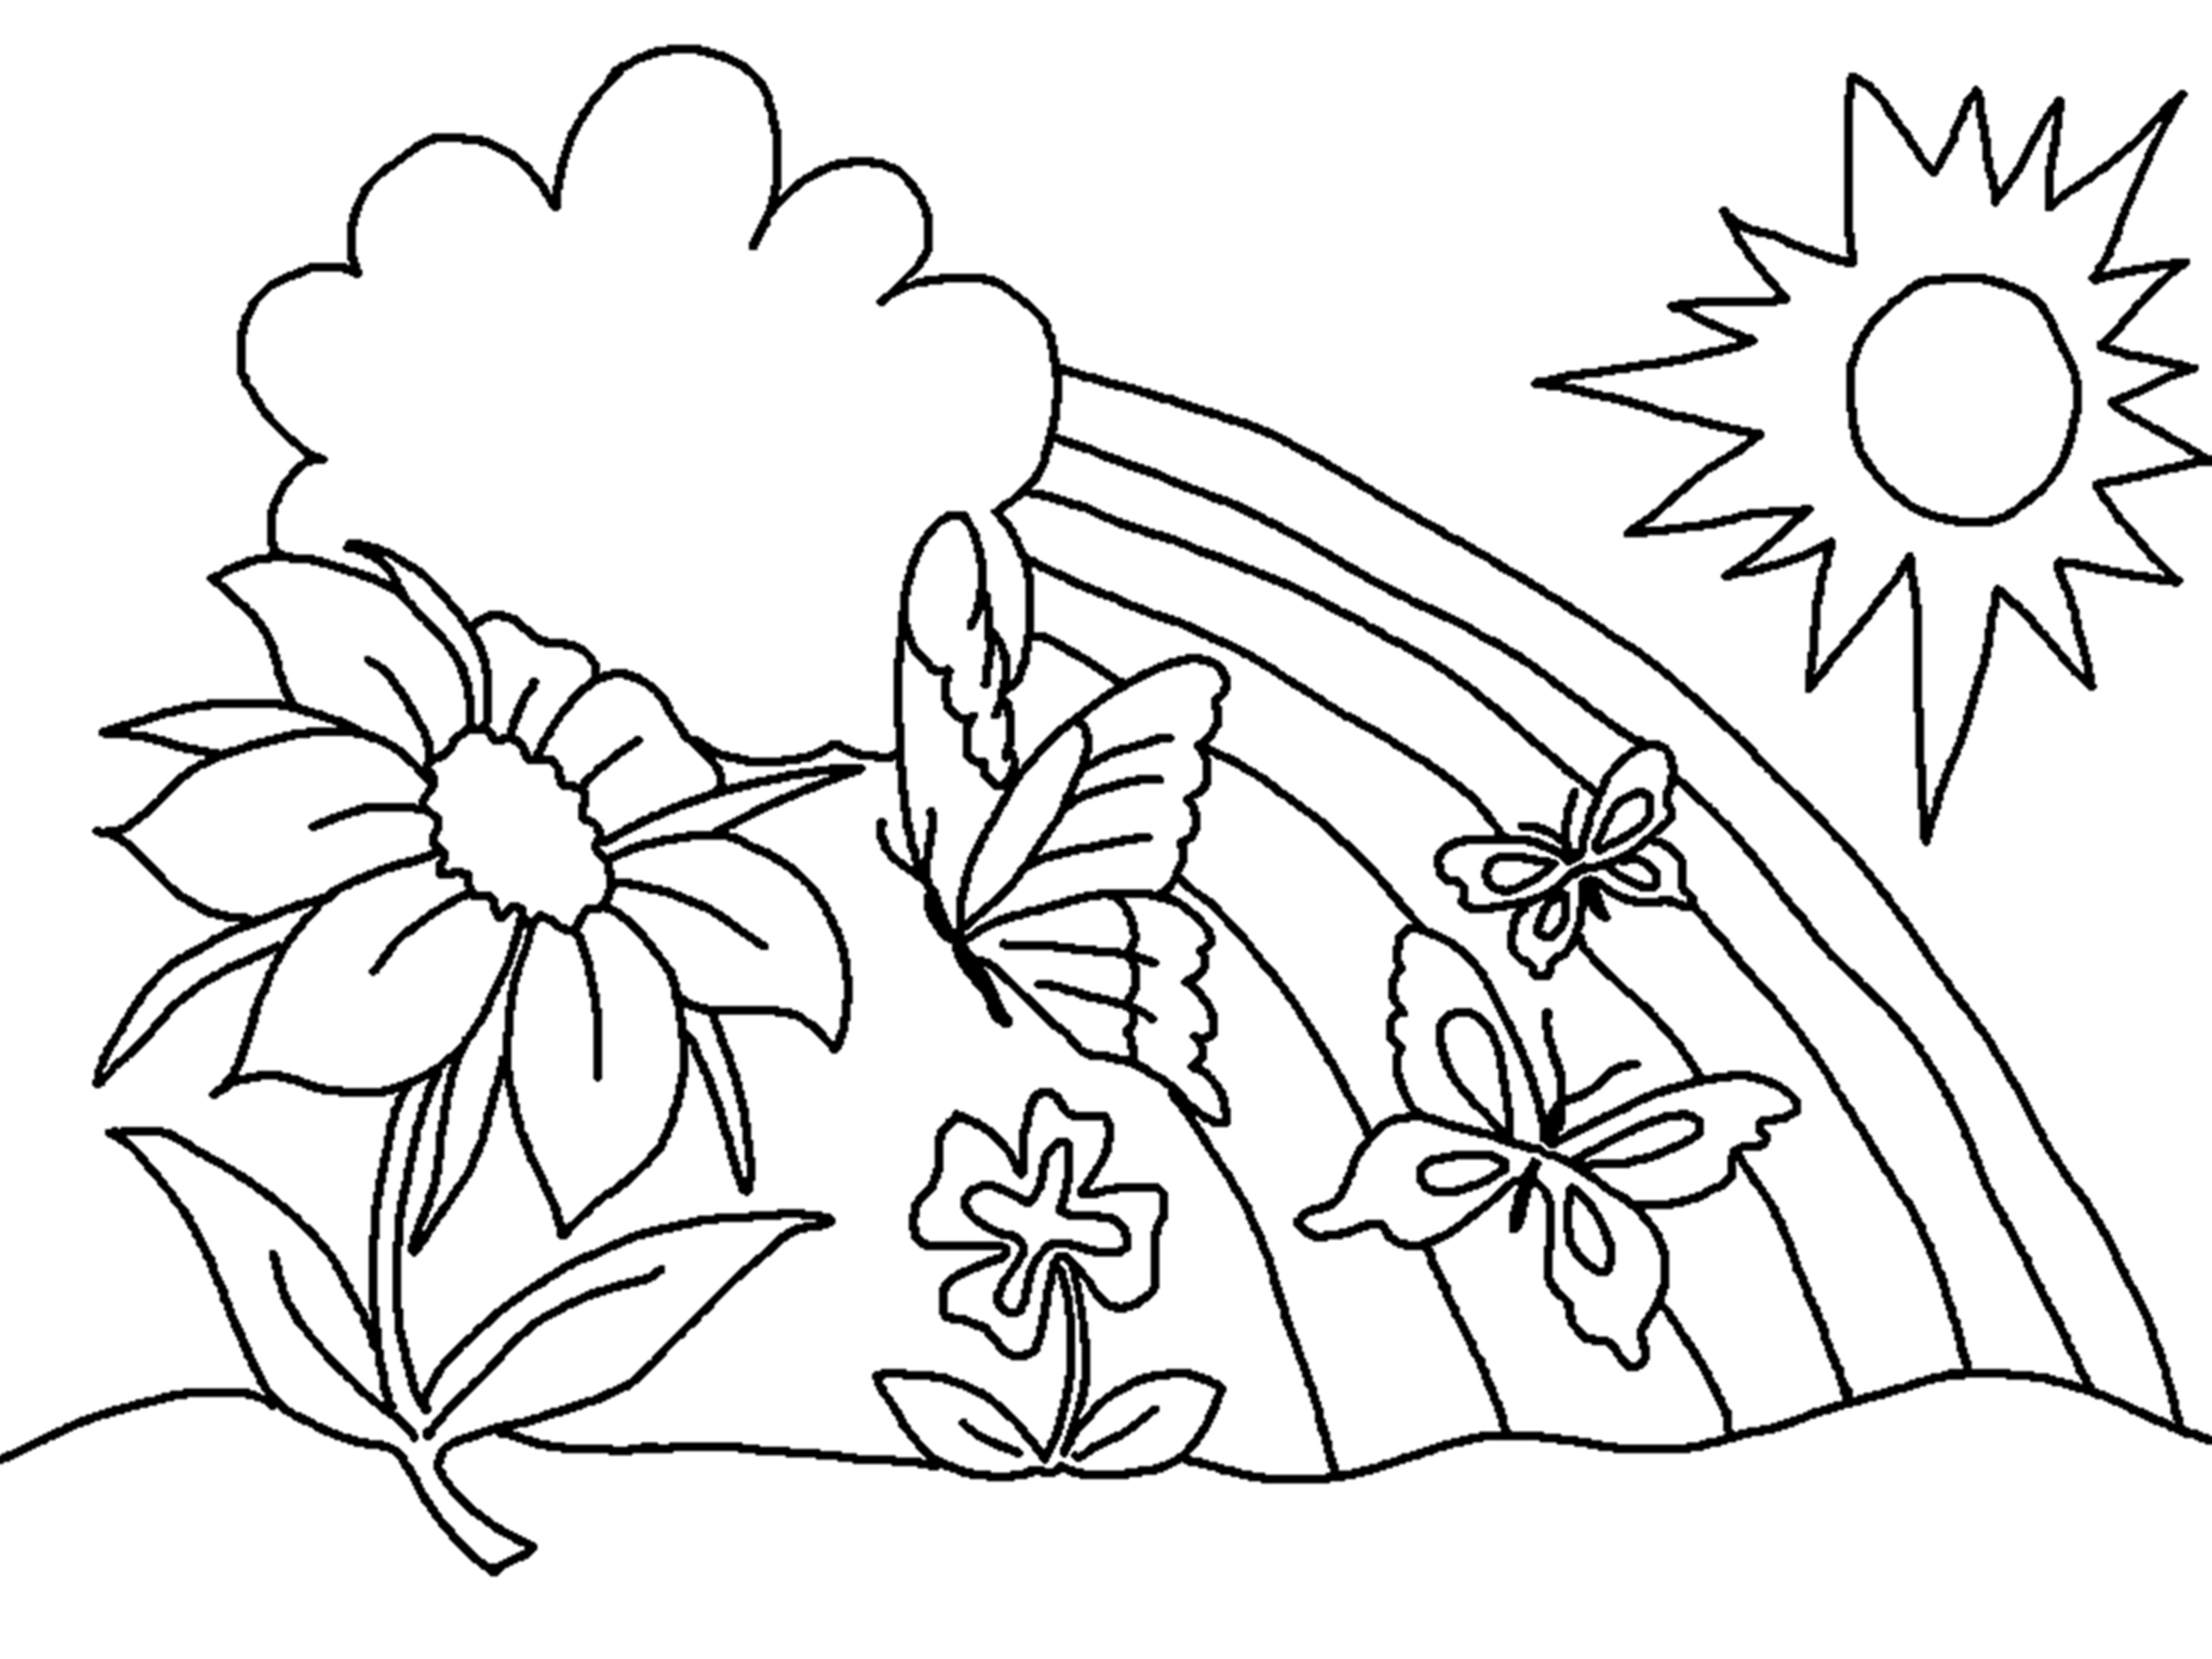 photograph relating to Printable Flower Coloring Pages known as Cost-free Printable Flower Coloring Webpages For Children - Easiest